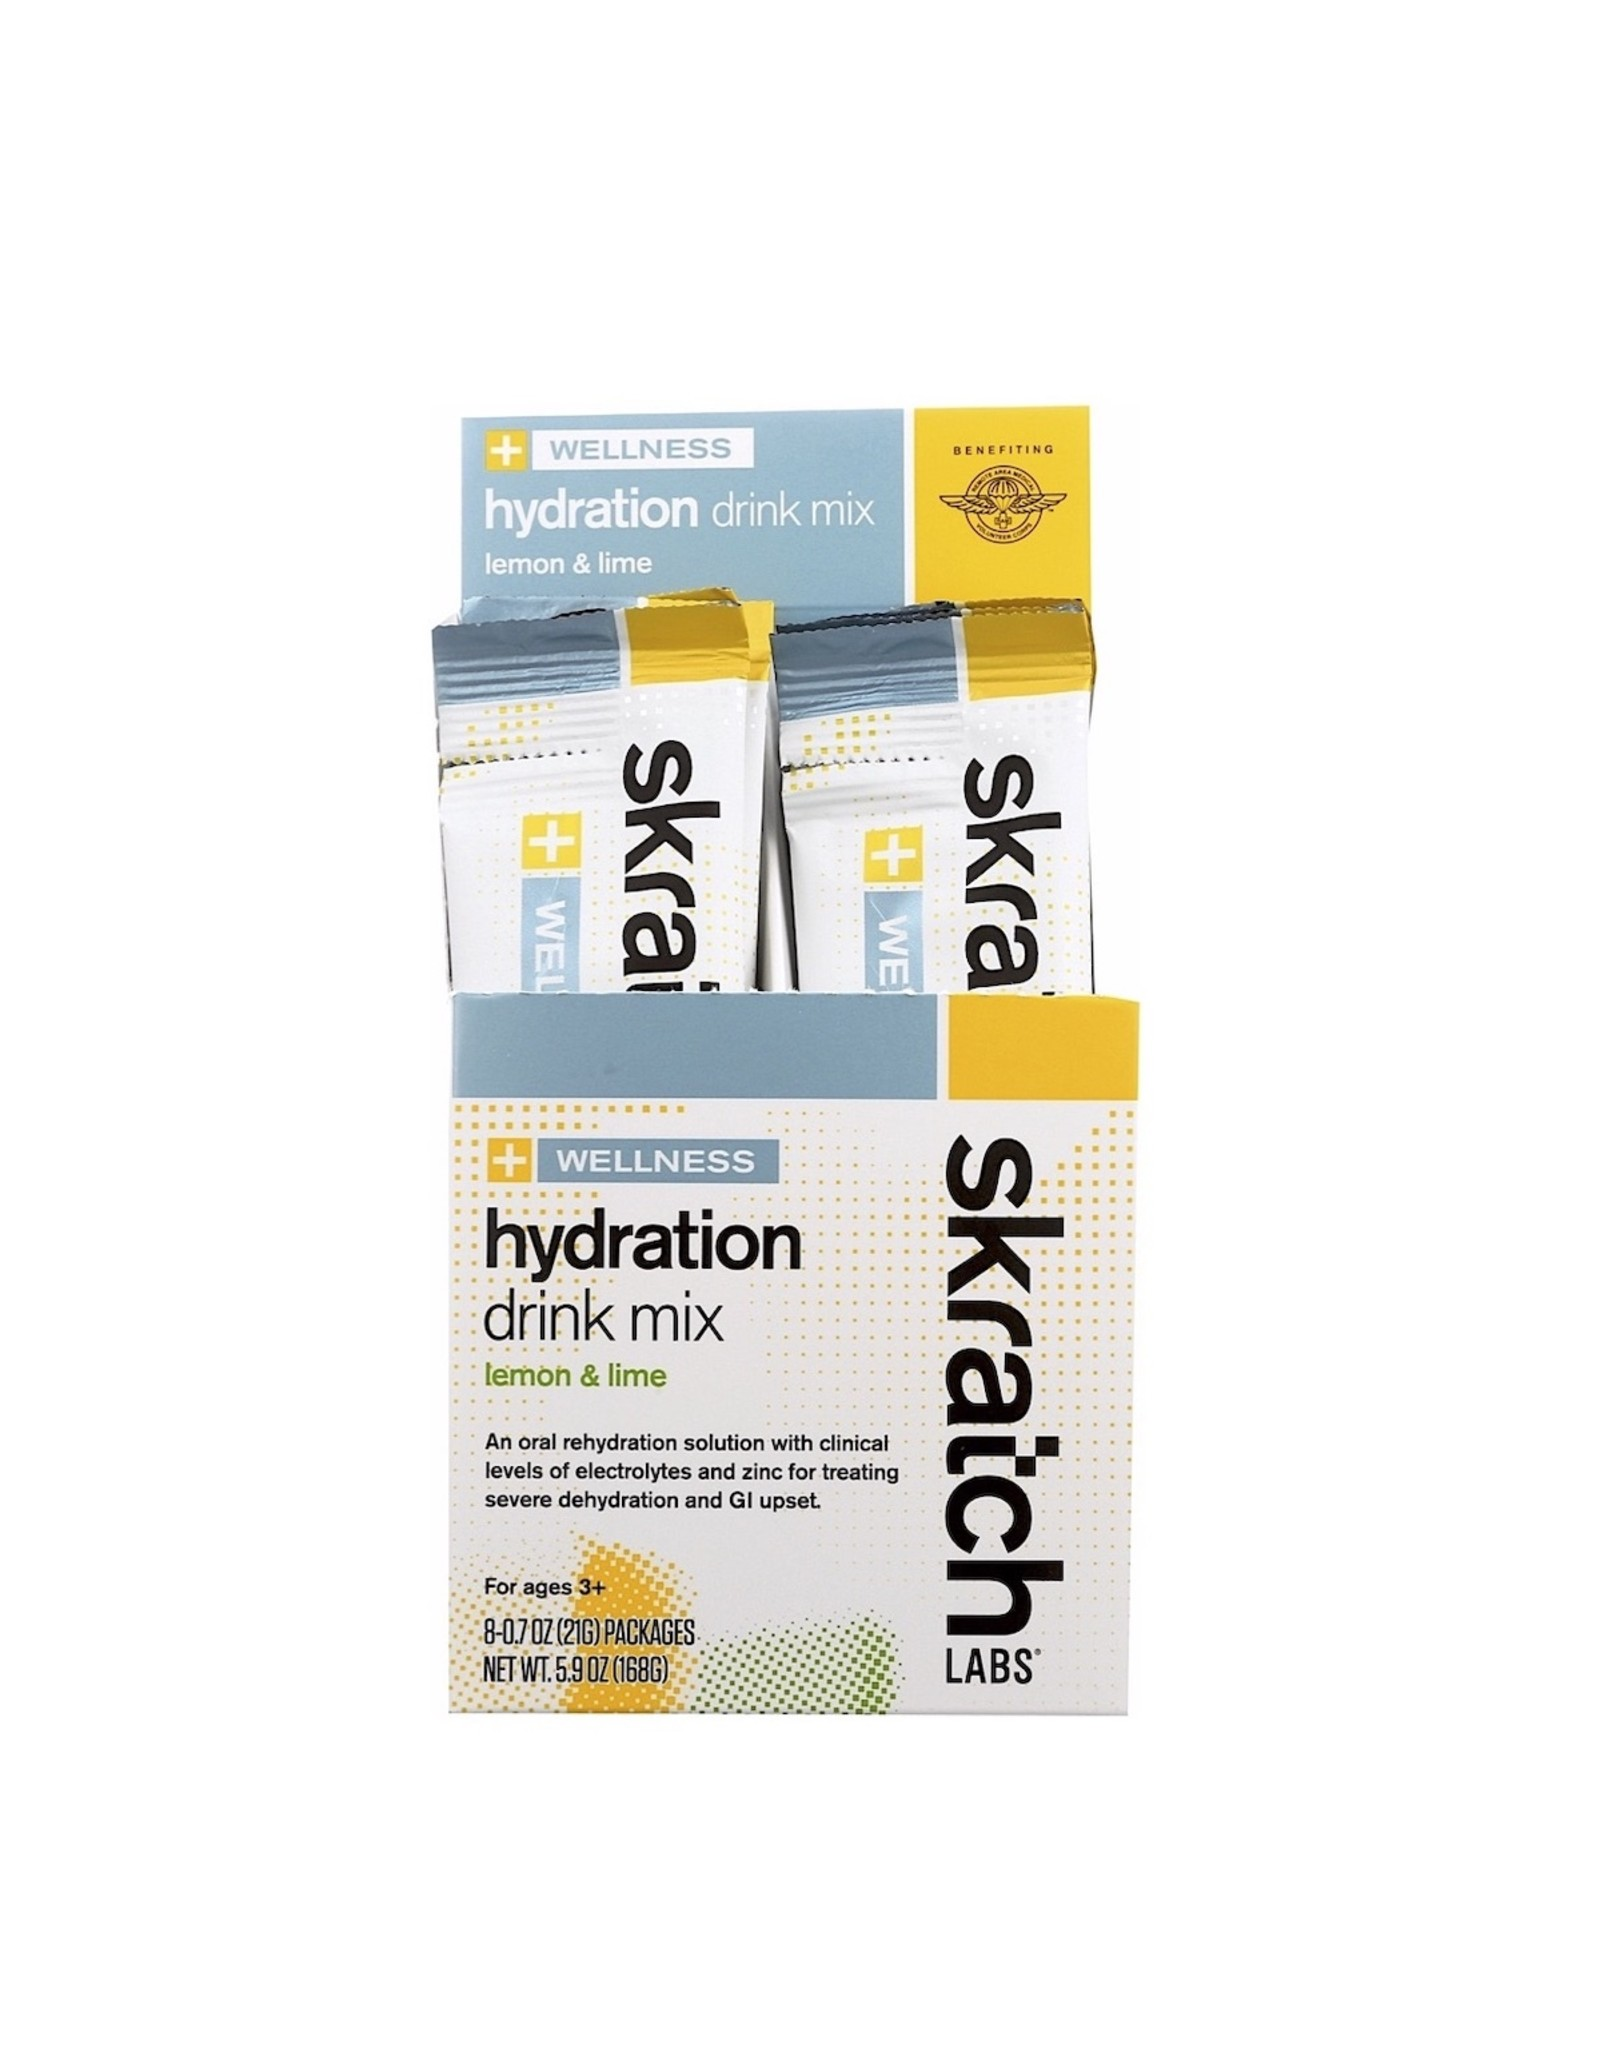 Skratch Labs Skratch Labs Wellness Hydration Drink Mix, Lemon and Lime, 21g, Single Serving 8-Pack